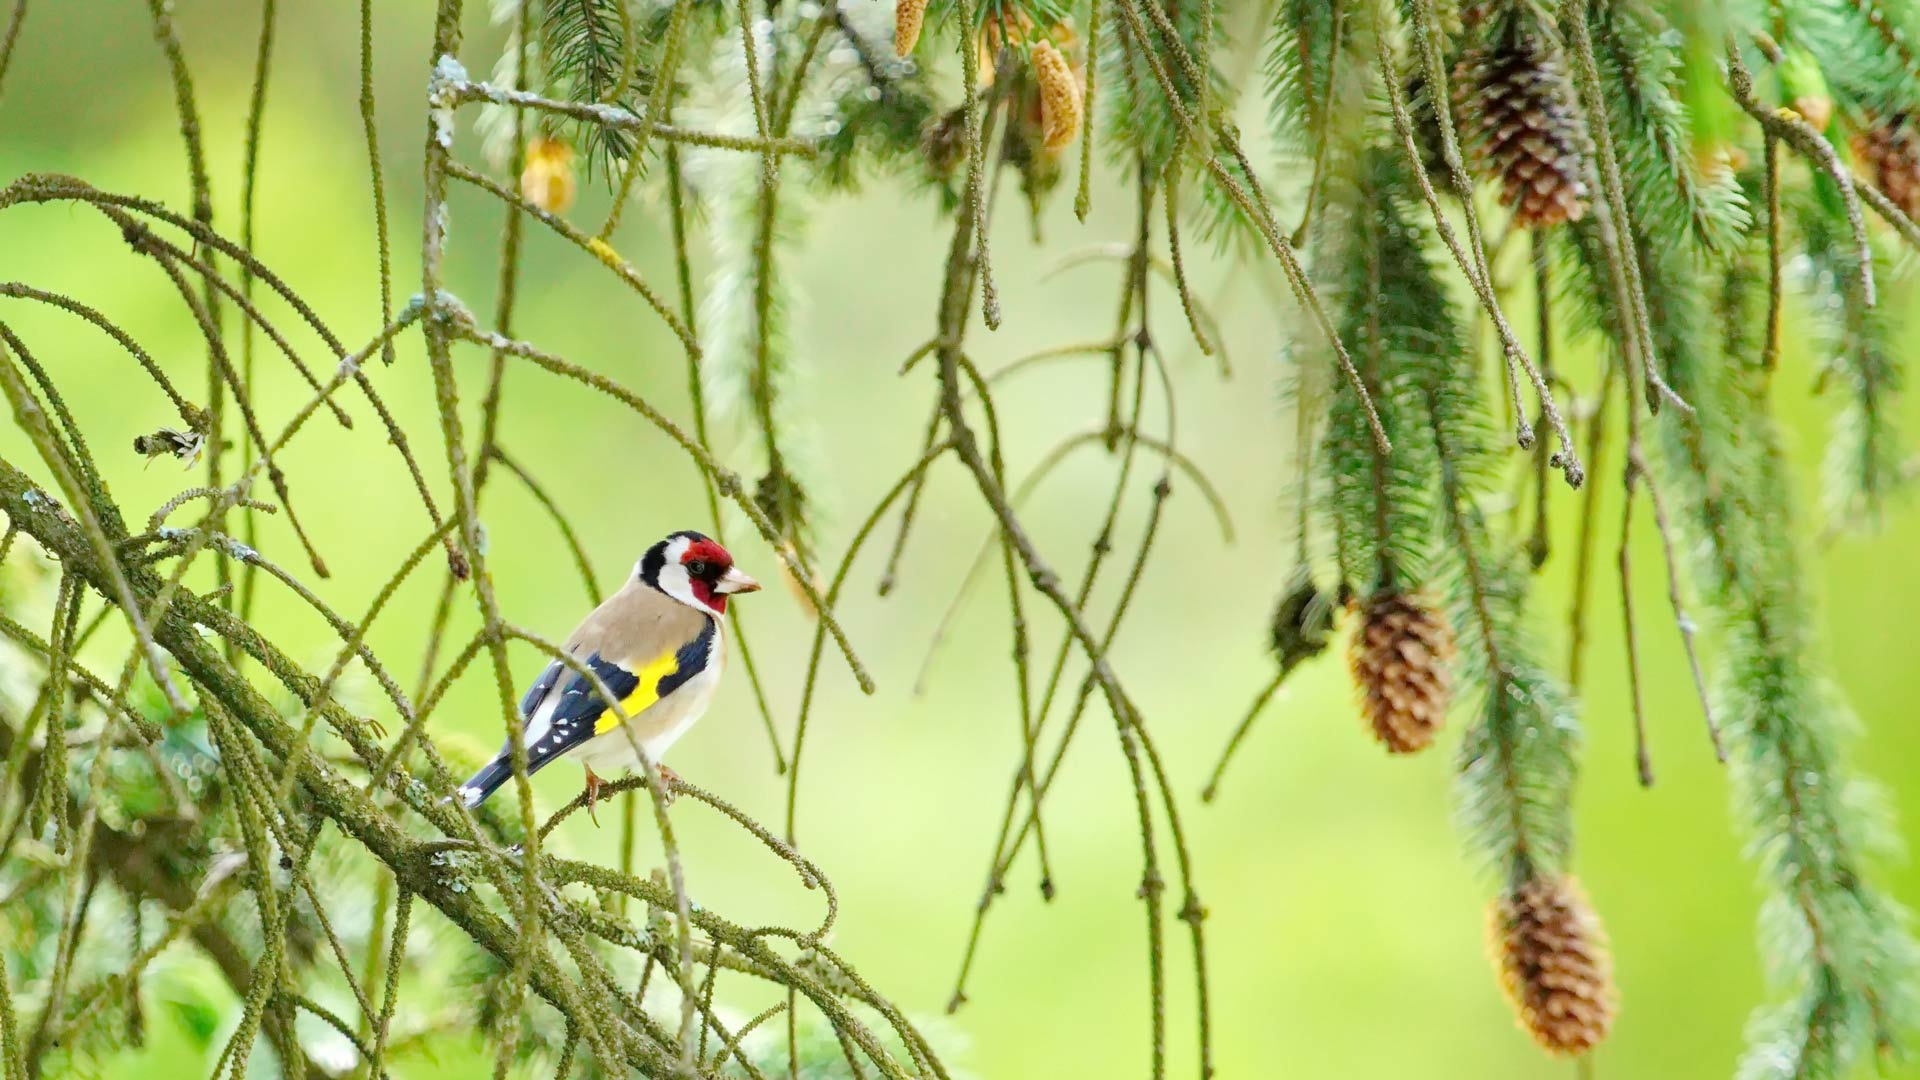 European goldfinch (carduelis carduelis) among branches in green background